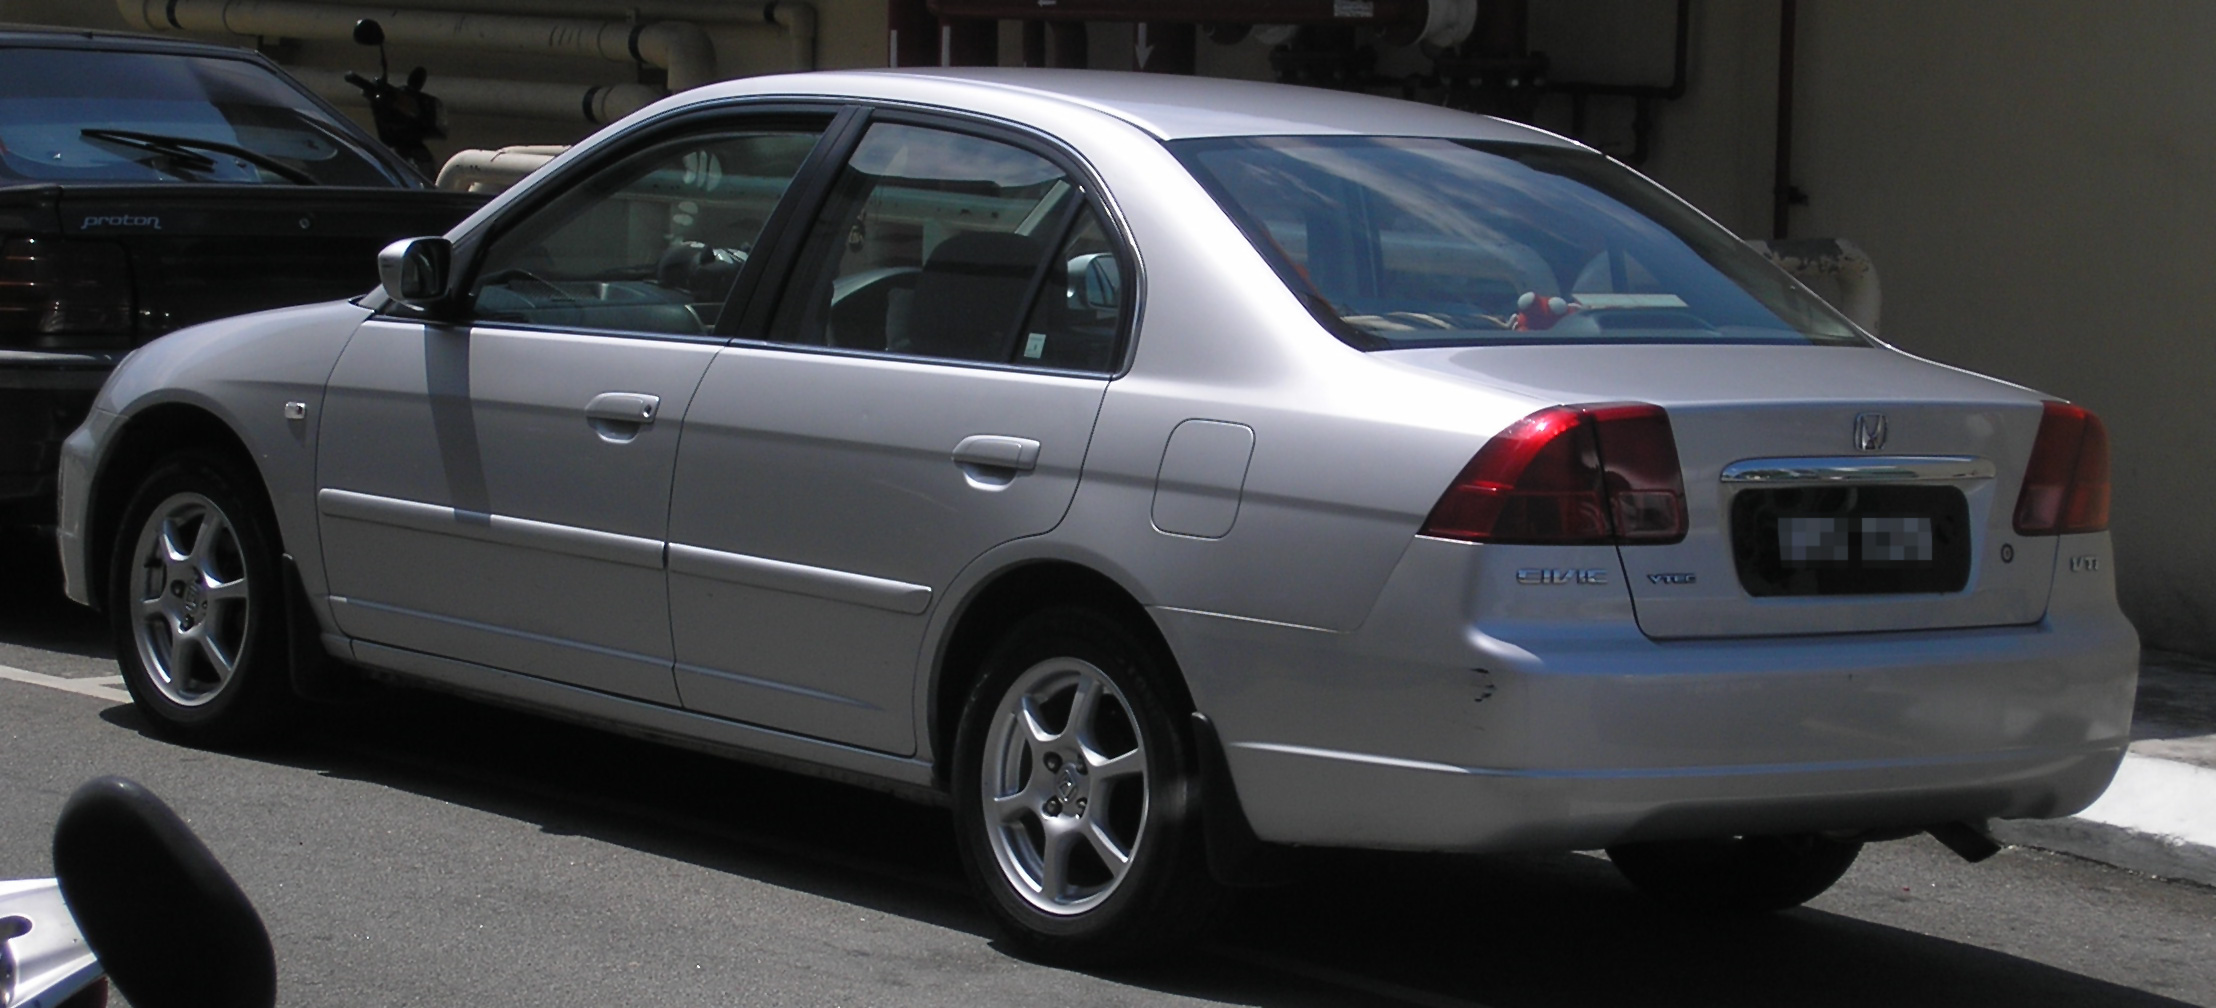 Seventh gen civic